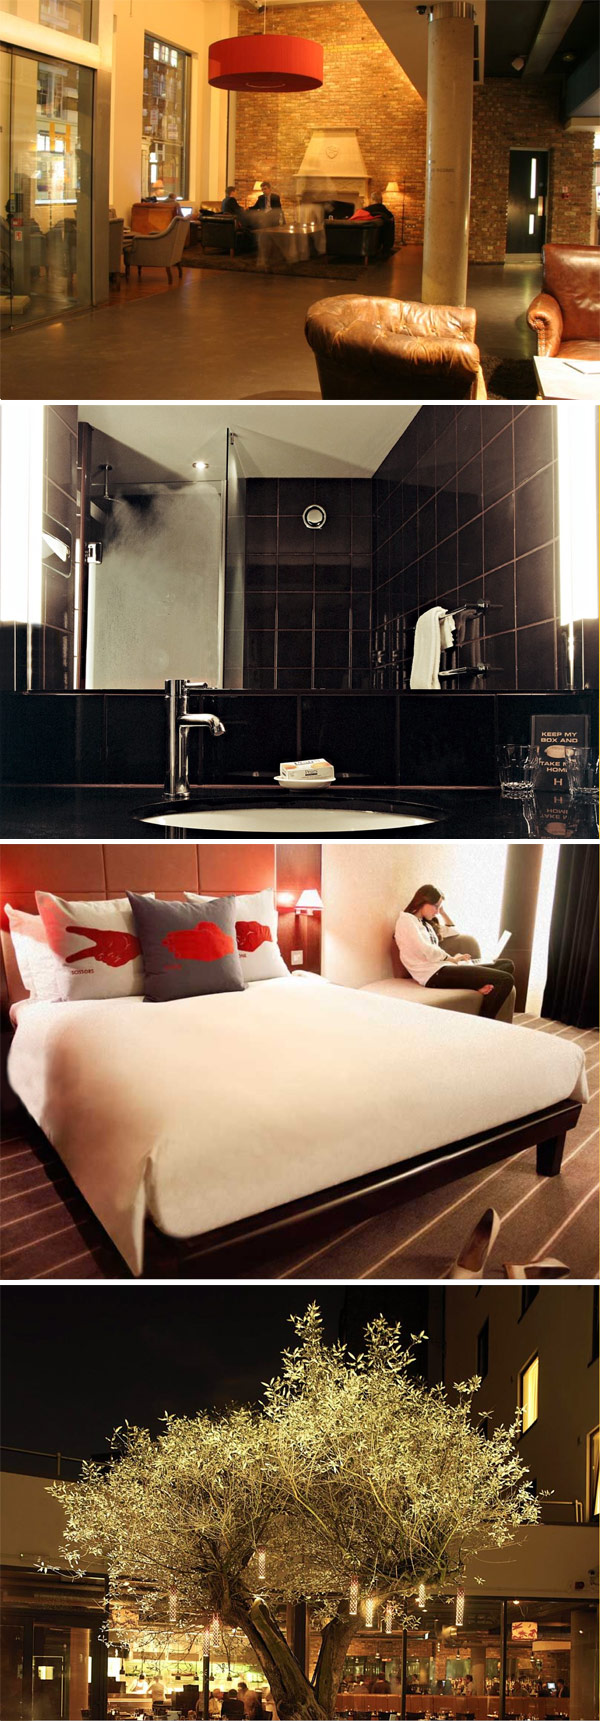 Shoreditch London Uk: The Hoxton An Urban Hotel In Shoreditch London